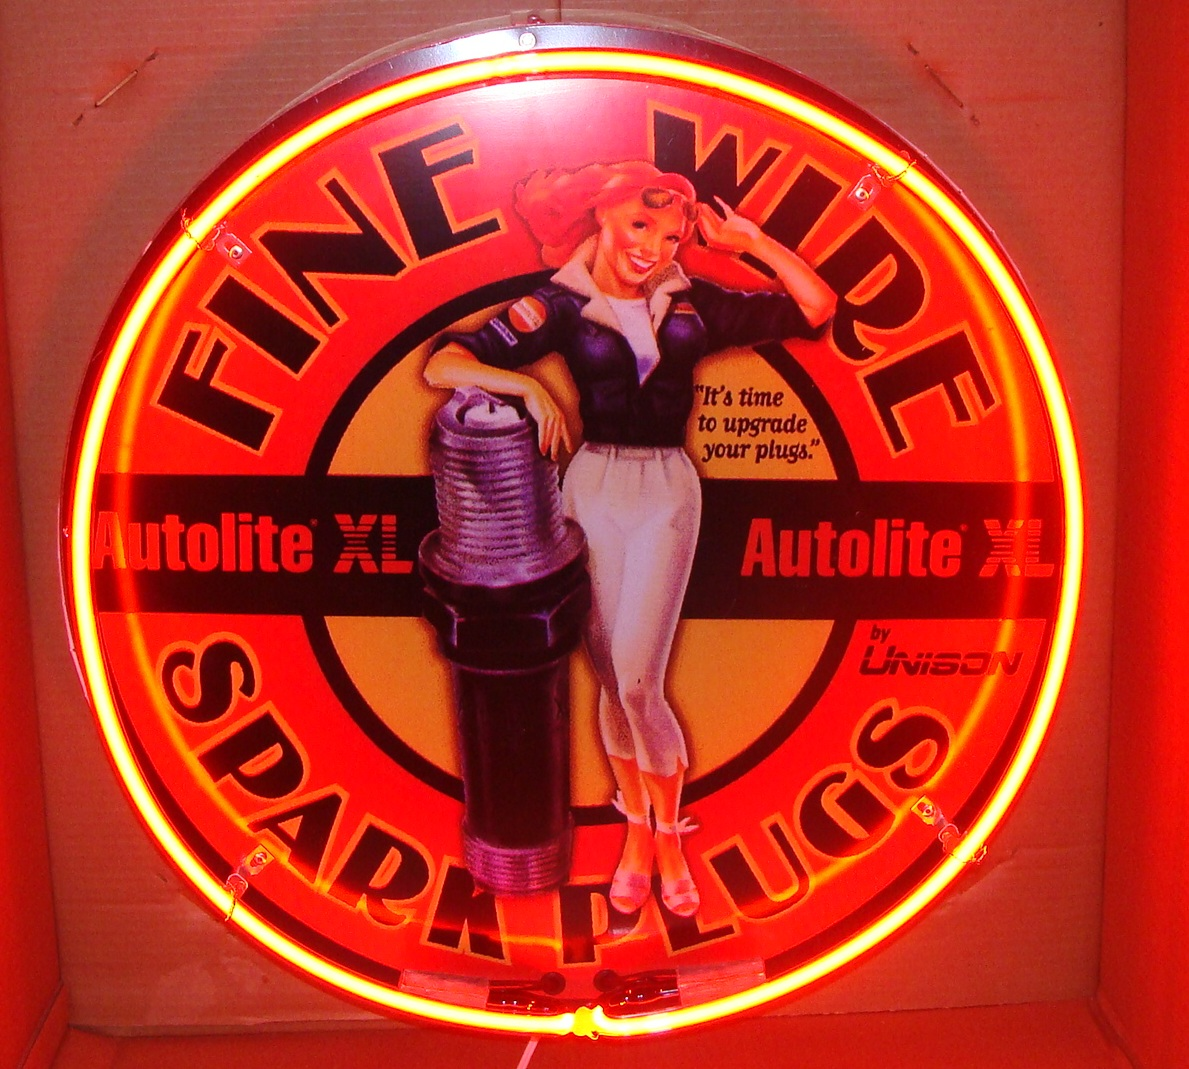 Aviation Autolite Spark Plug Pin-Up Girl Advertising Neon 24 inches round